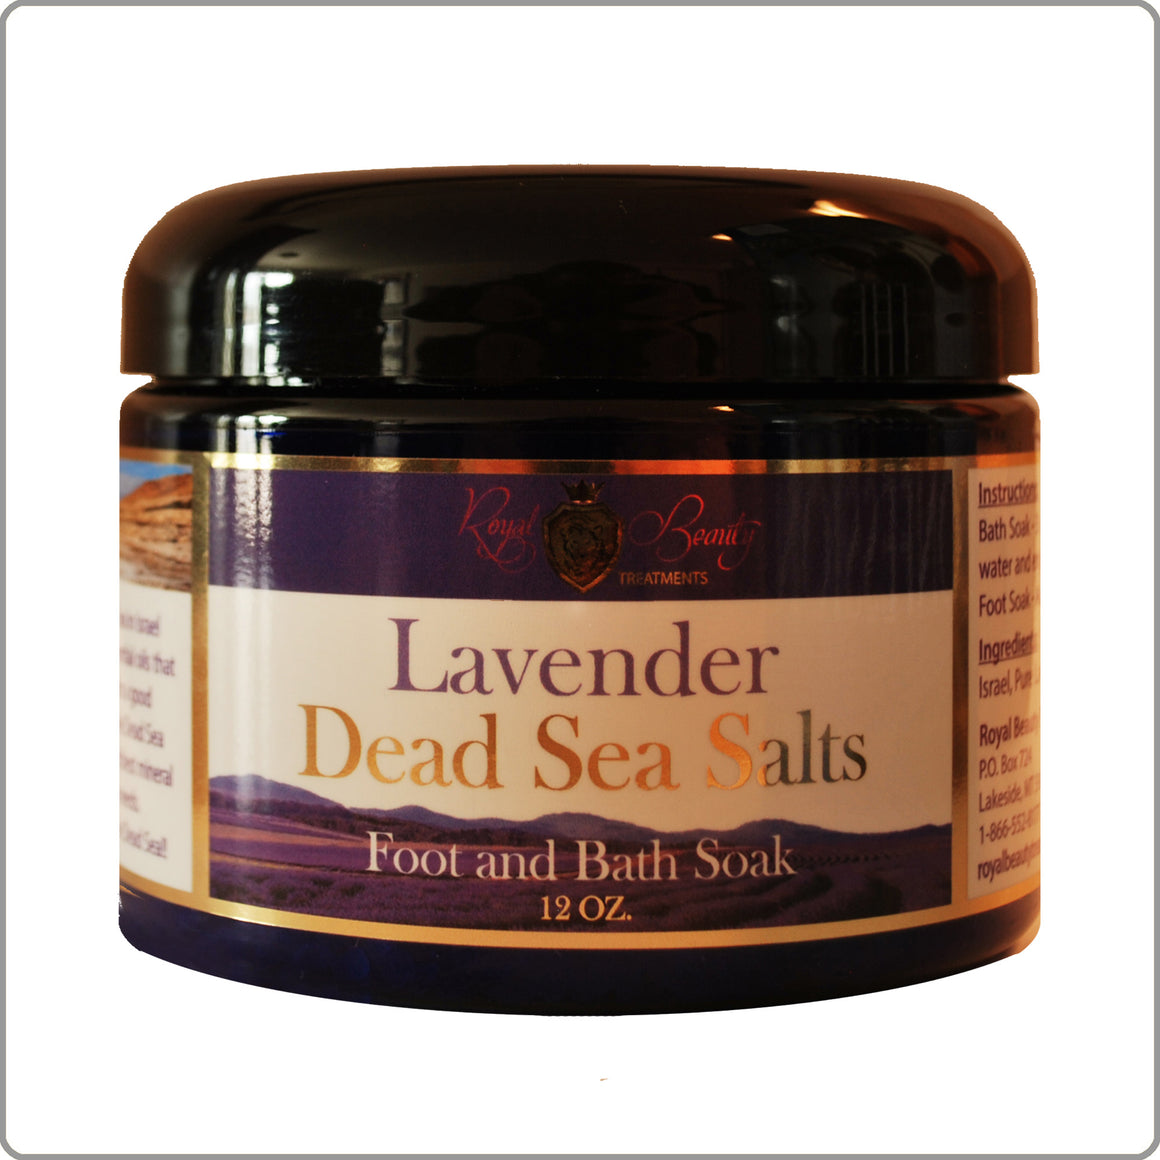 New 12oz. Lavender Dead Sea Salts